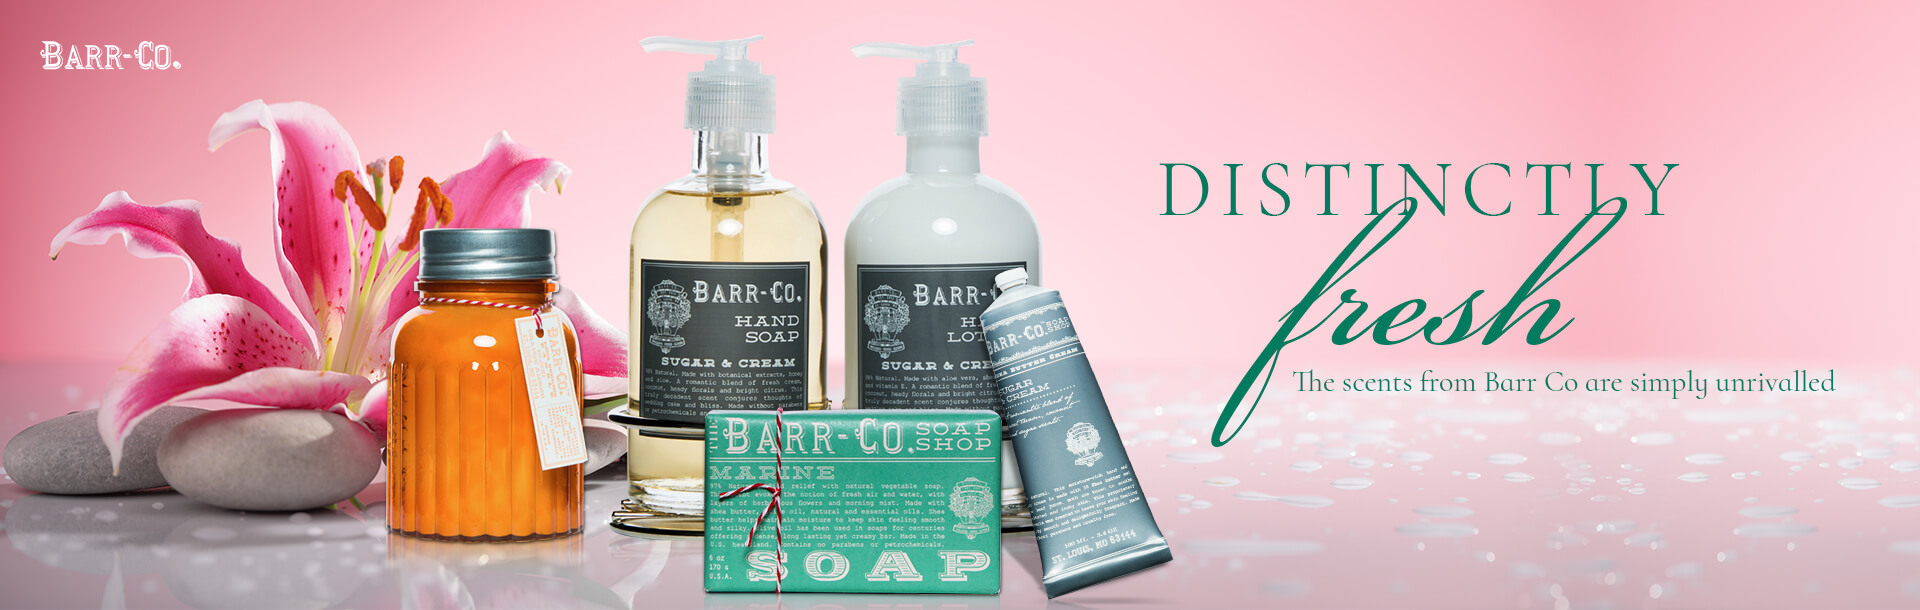 Barr Co Collection